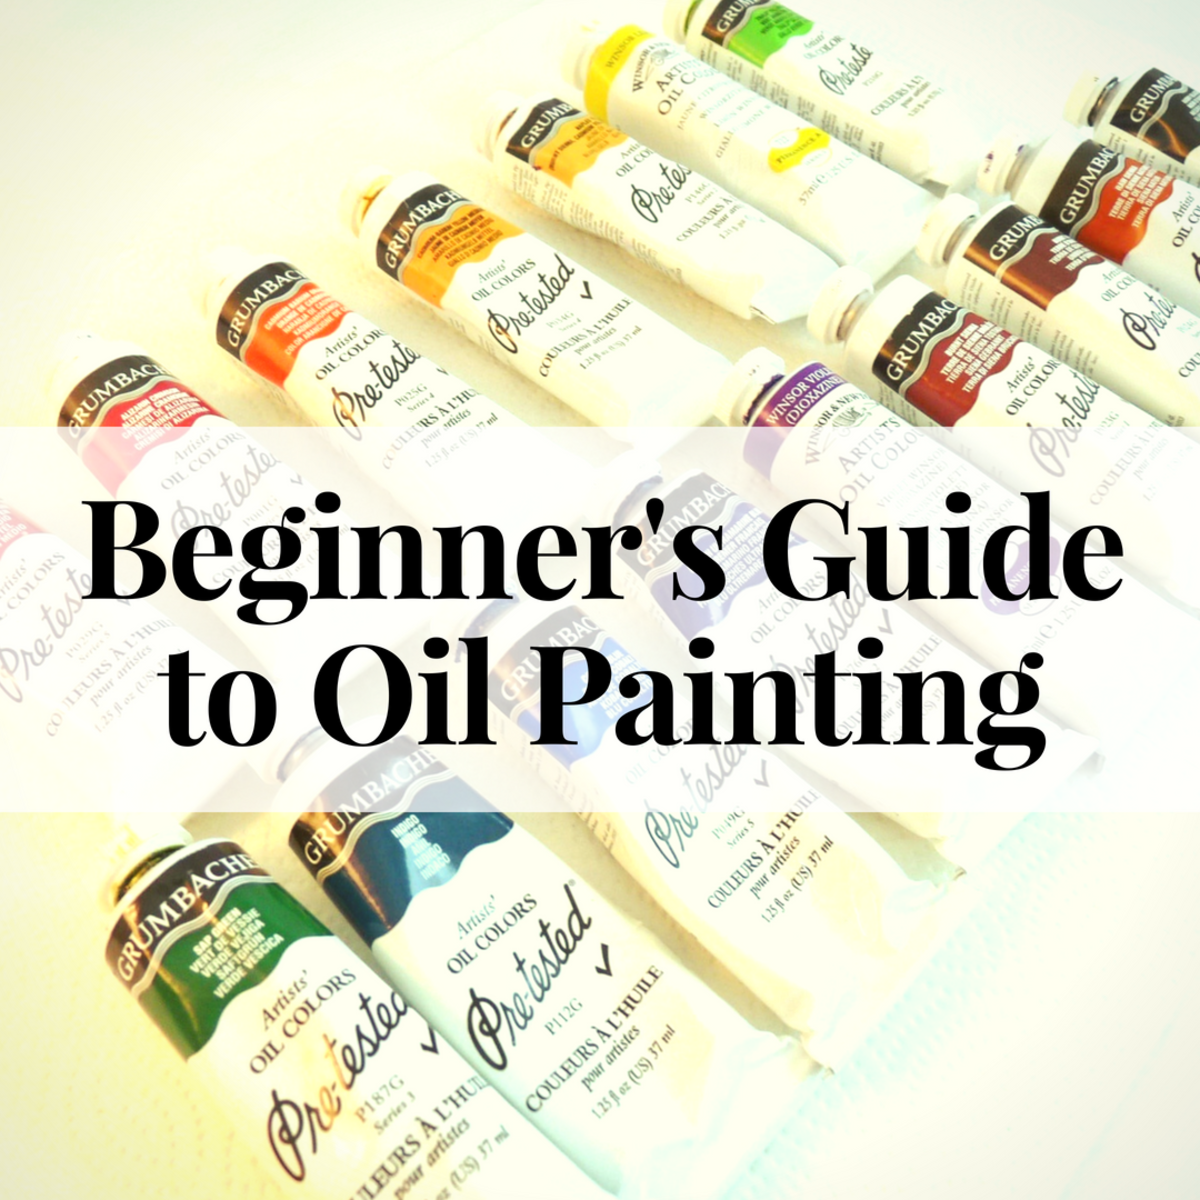 Beginner's Guide to Oil Painting - A step-by-step guide that teaches you the basics of painting with oil.